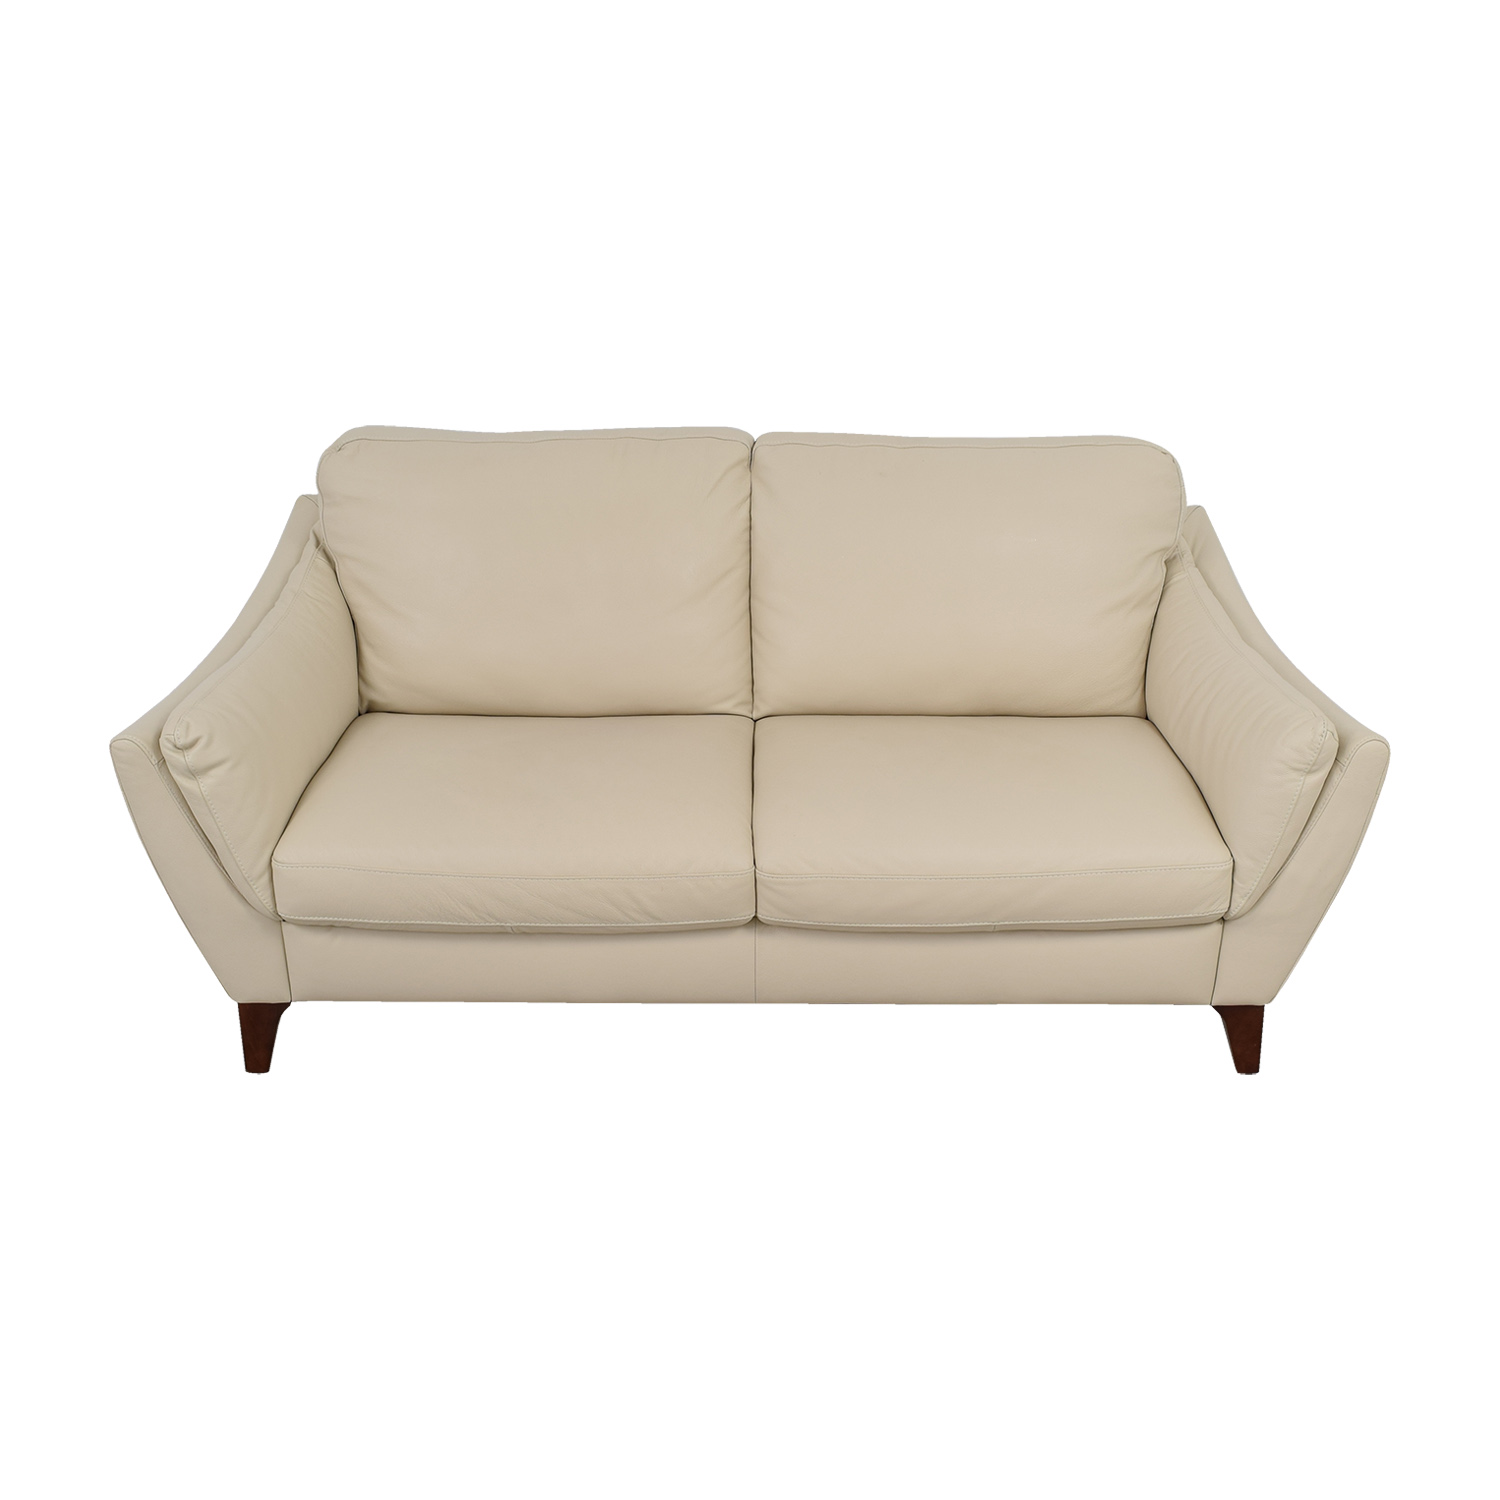 Raymour & Flanigan Raymour & Flanigan Natuzzi Editions Beige Leather Two-Cushion Sofa discount